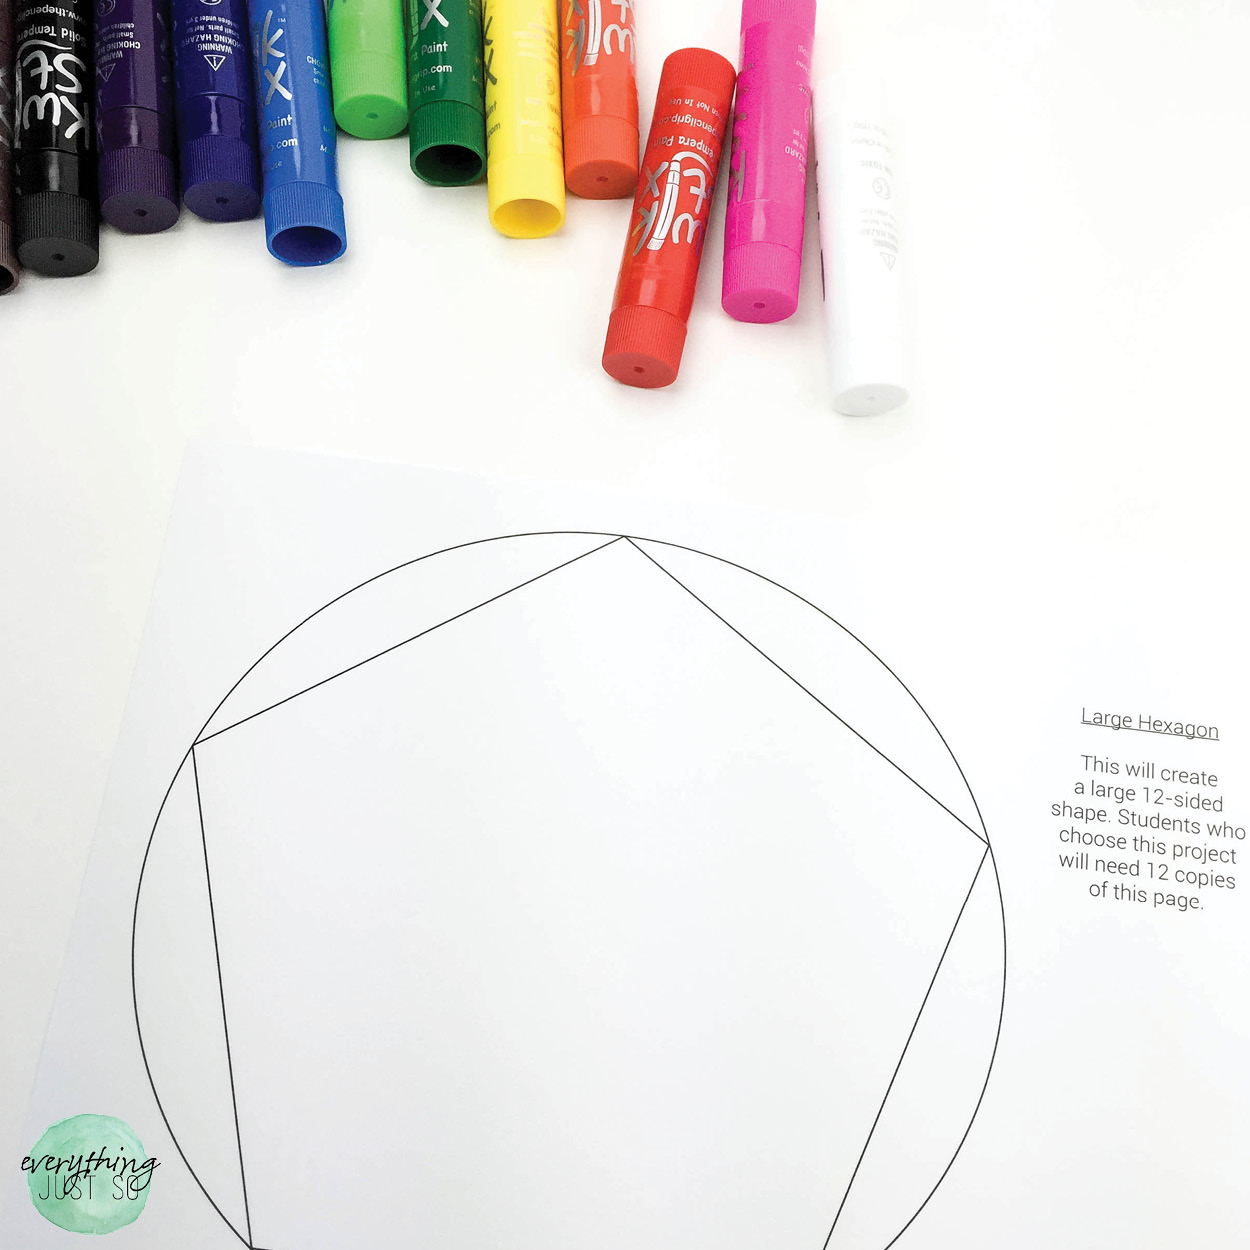 The Best Tool for Art Projects I Have Ever Seen | Love art projects but hate the mess? Use this painting tool and never have a mess again. | everythingjustso.org